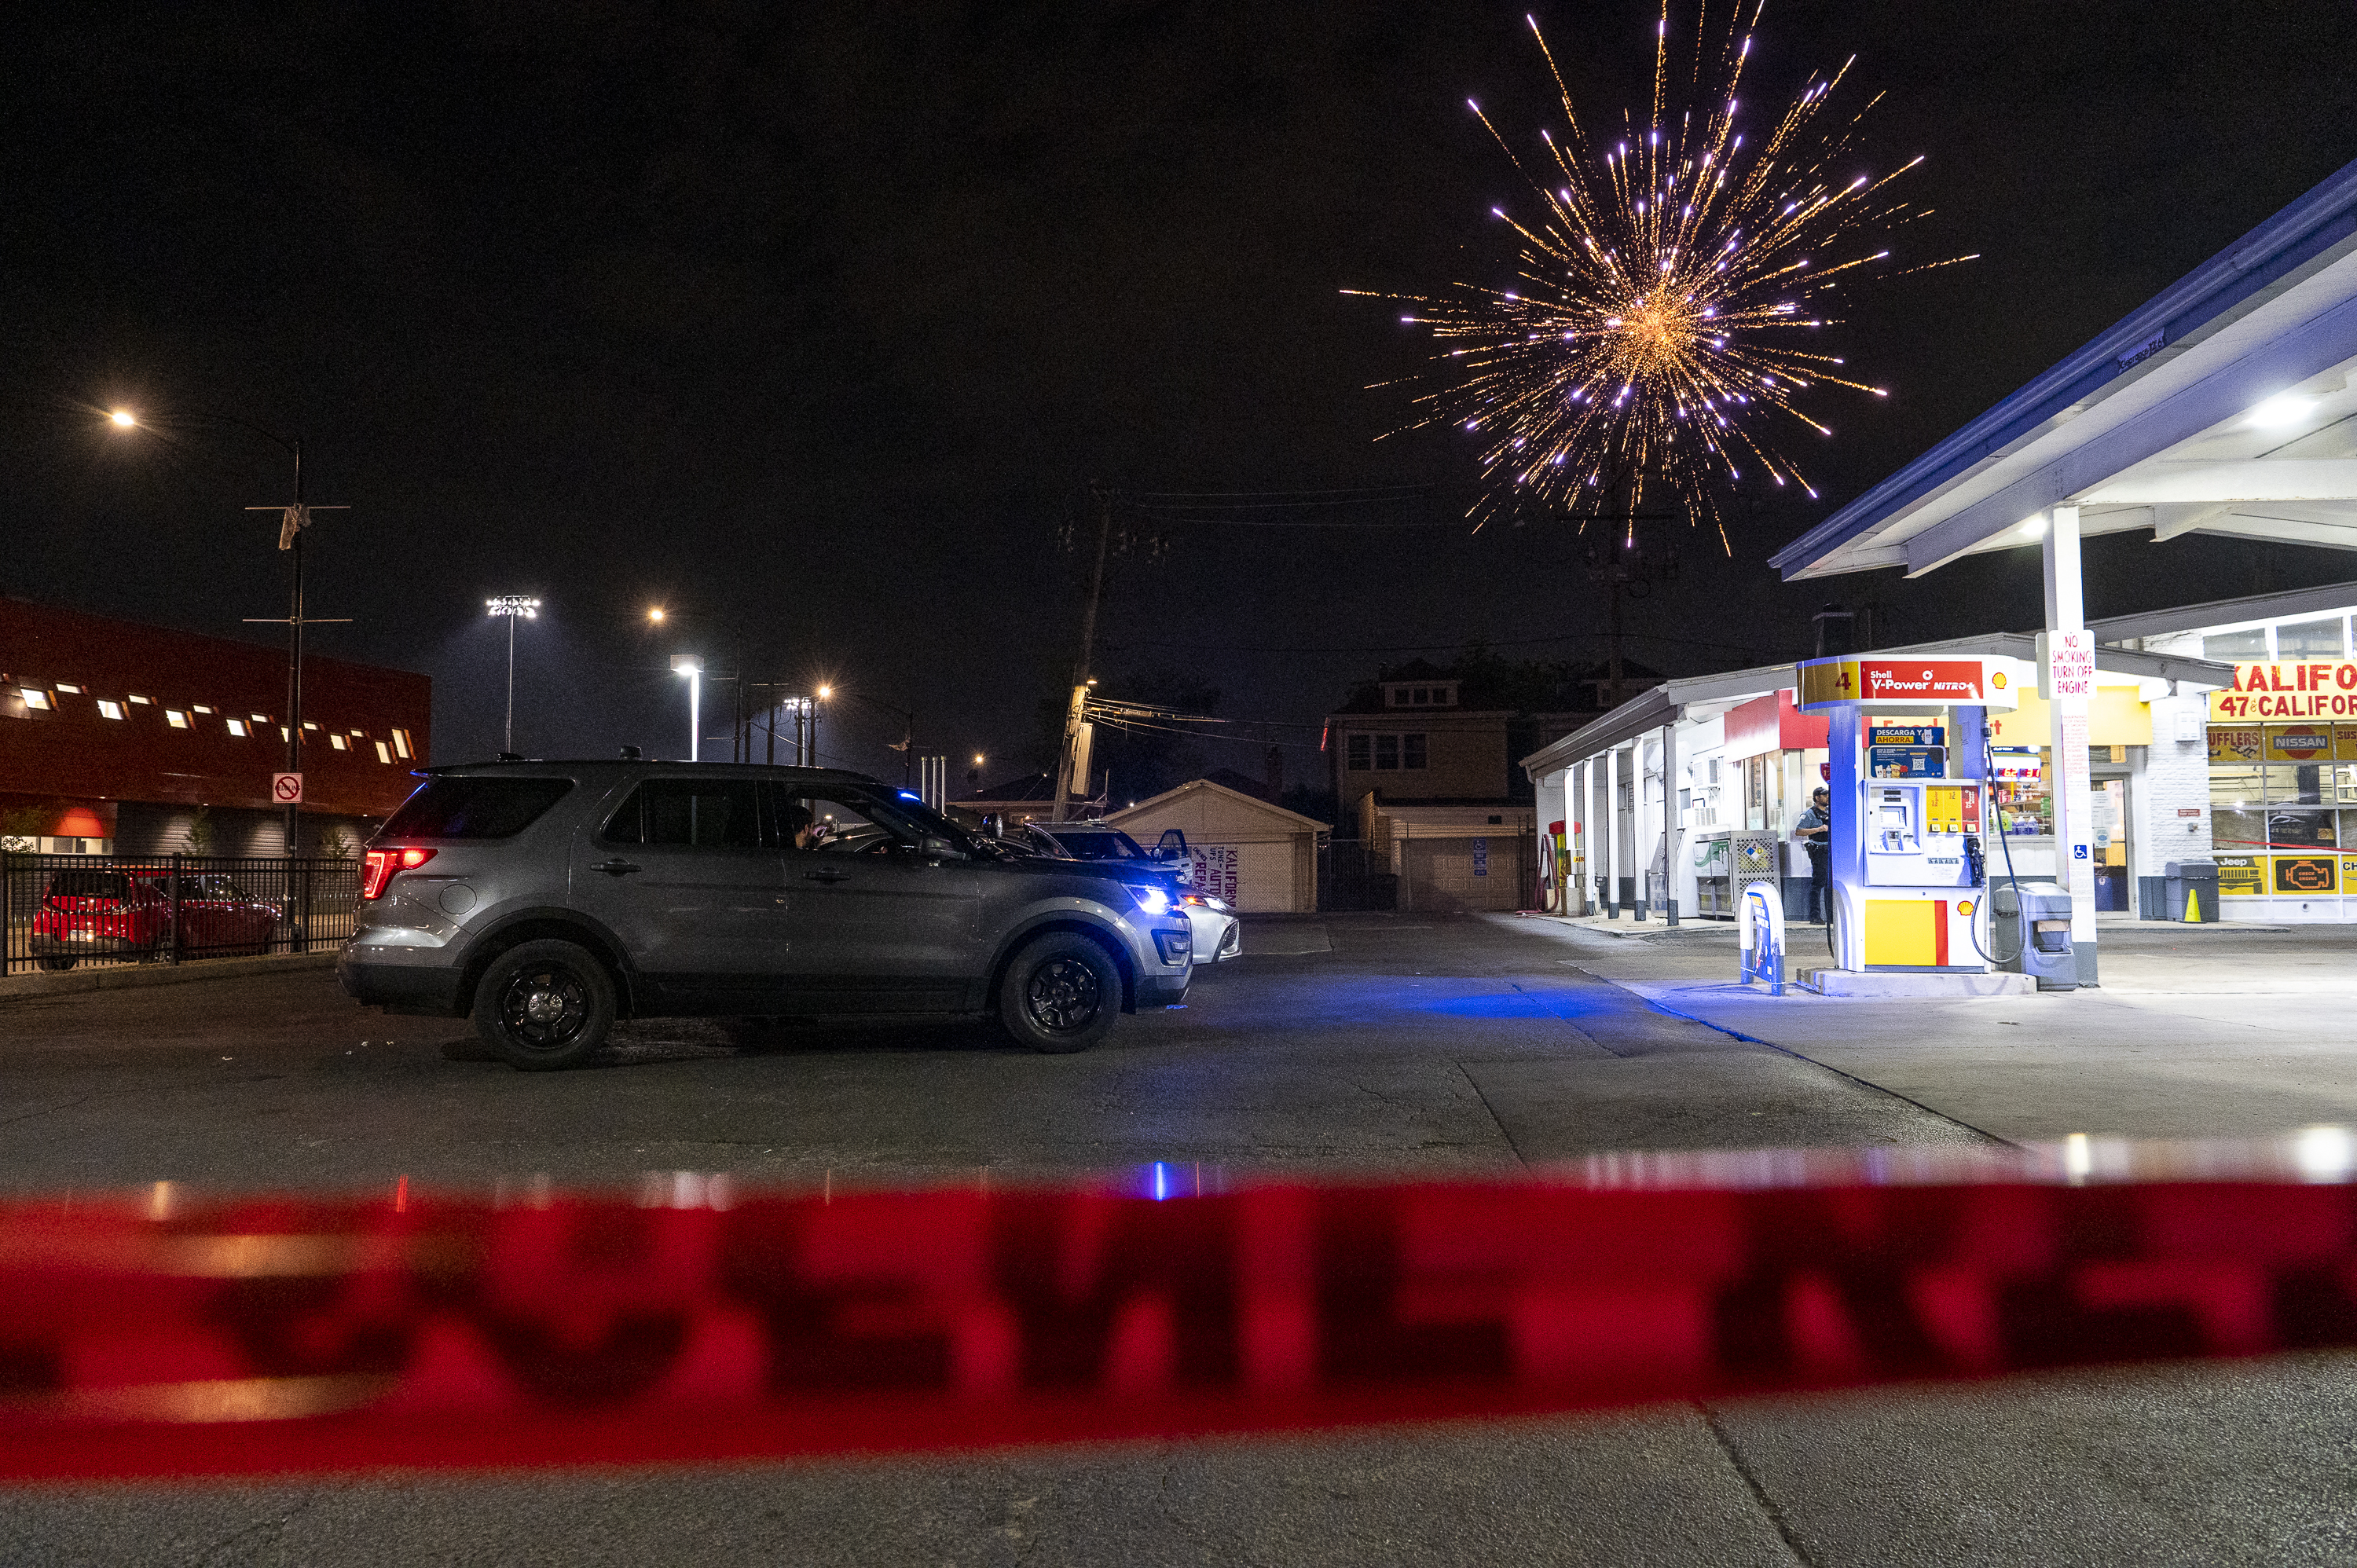 A fireworks explodes in the air as Chicago police work the scene were a 20-year-old woman was shot in 4700 block of South California Ave, in the Brighton Park neighborhood, Friday, June 11, 2021. The shooting initially took place near the 4700 block of South Rockwell.